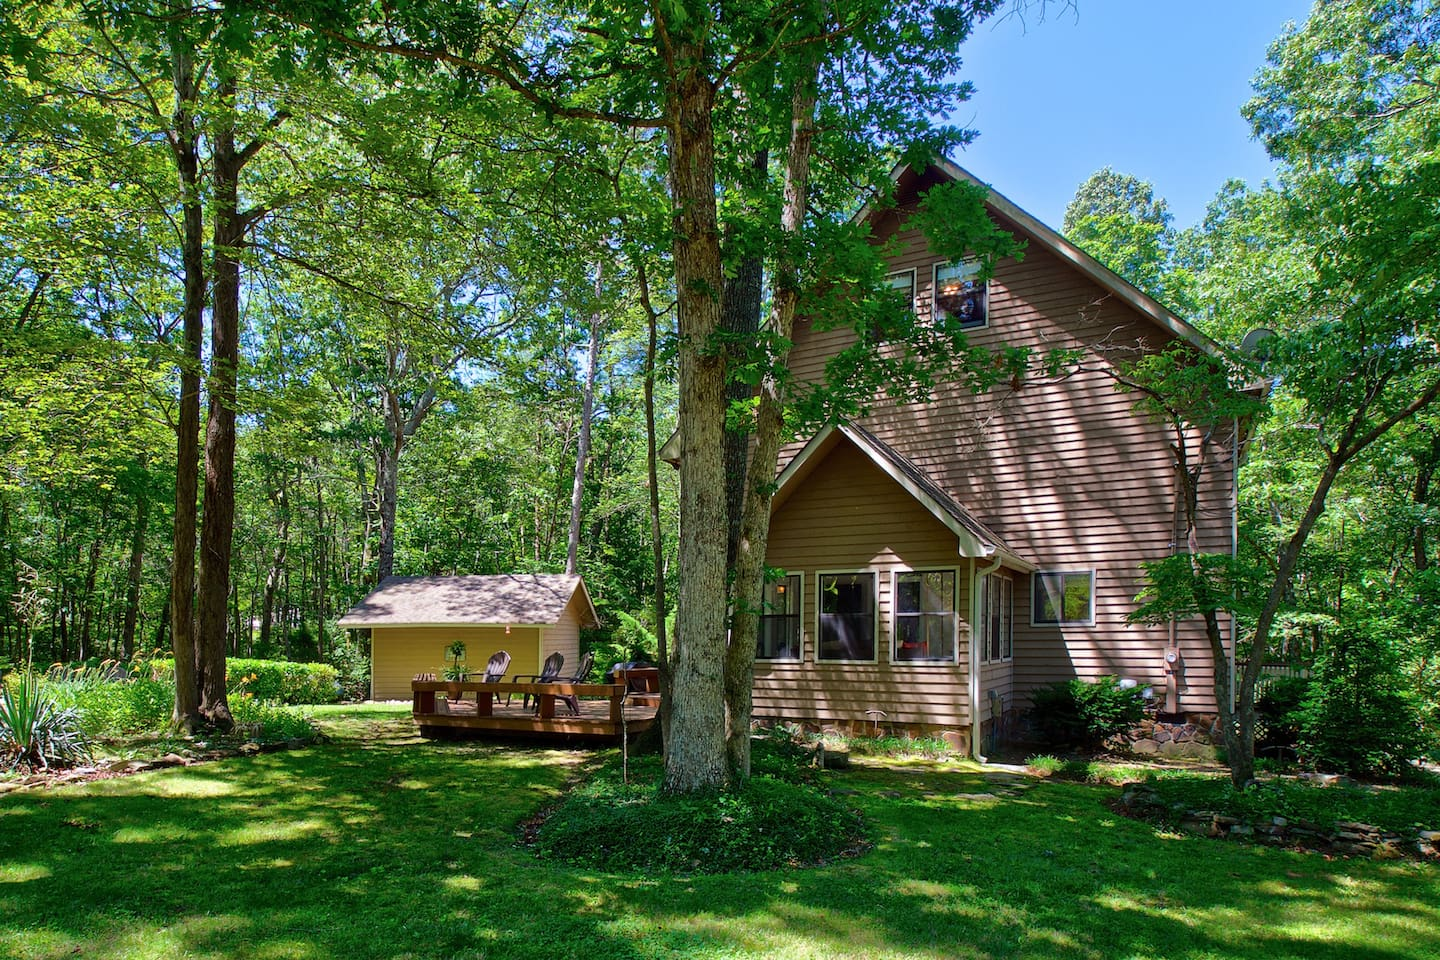 for mountains cabins tn cheap pigeon in tennessee rent rentls friendly great pet rentals chlets chattanooga cb park cabin forge gatlinburg national smoky lurel mount